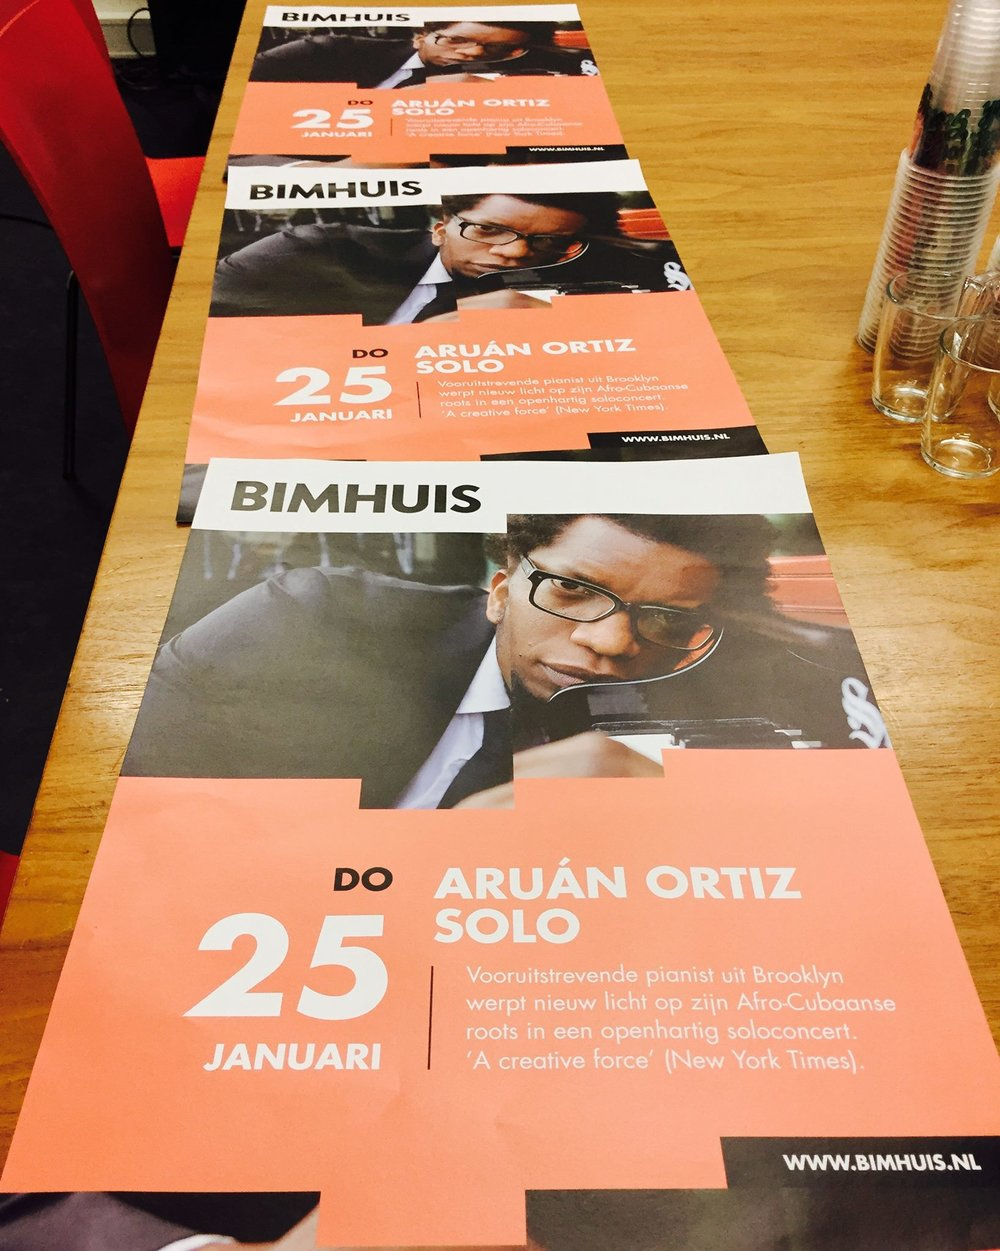 Aruán Photo Bimhuis.jpg